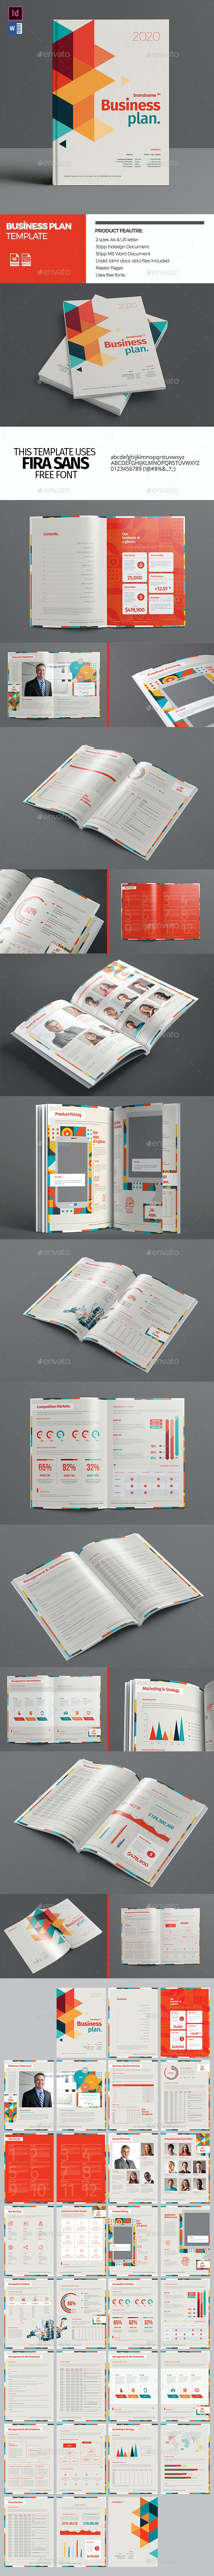 Business Plan Template - Proposals & Invoices Stationery